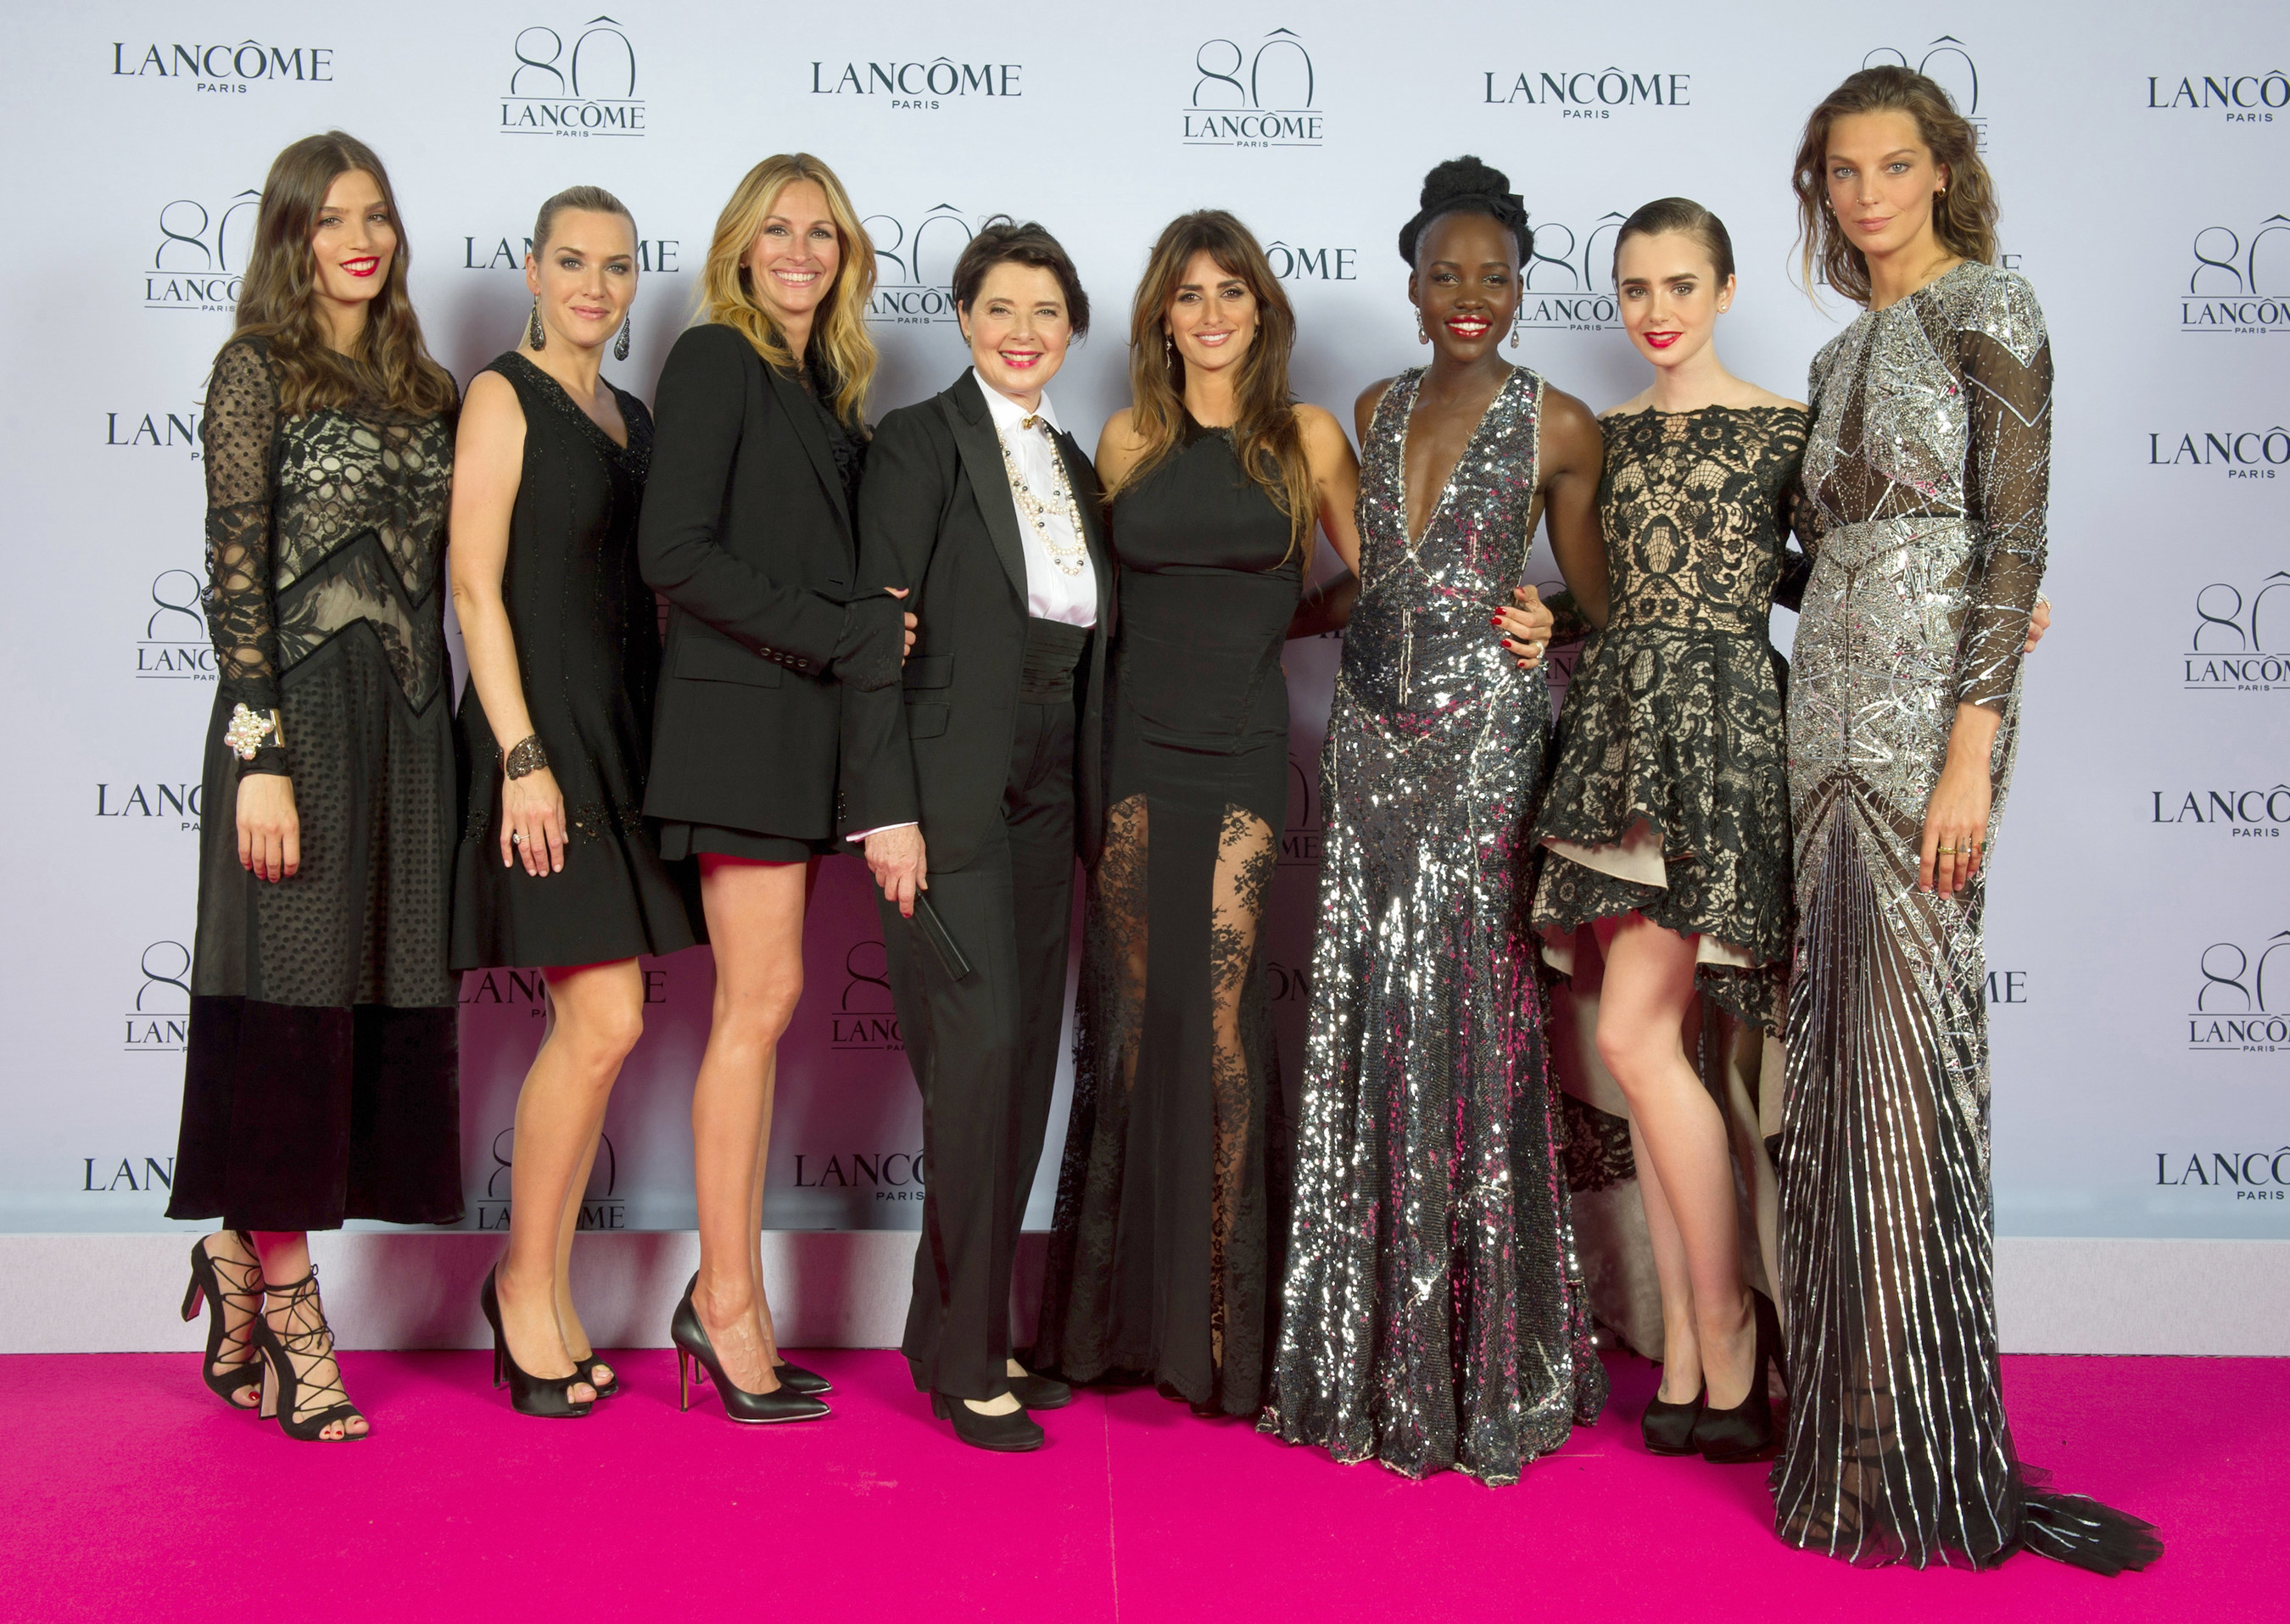 On the red carpet: Alma Jodorowsky, Kate Winslet, Julia Roberts, Isabella Rossellini, Penelope Cruz, Lupita Nyong'o, Lilly Collins, Daria Werbowy